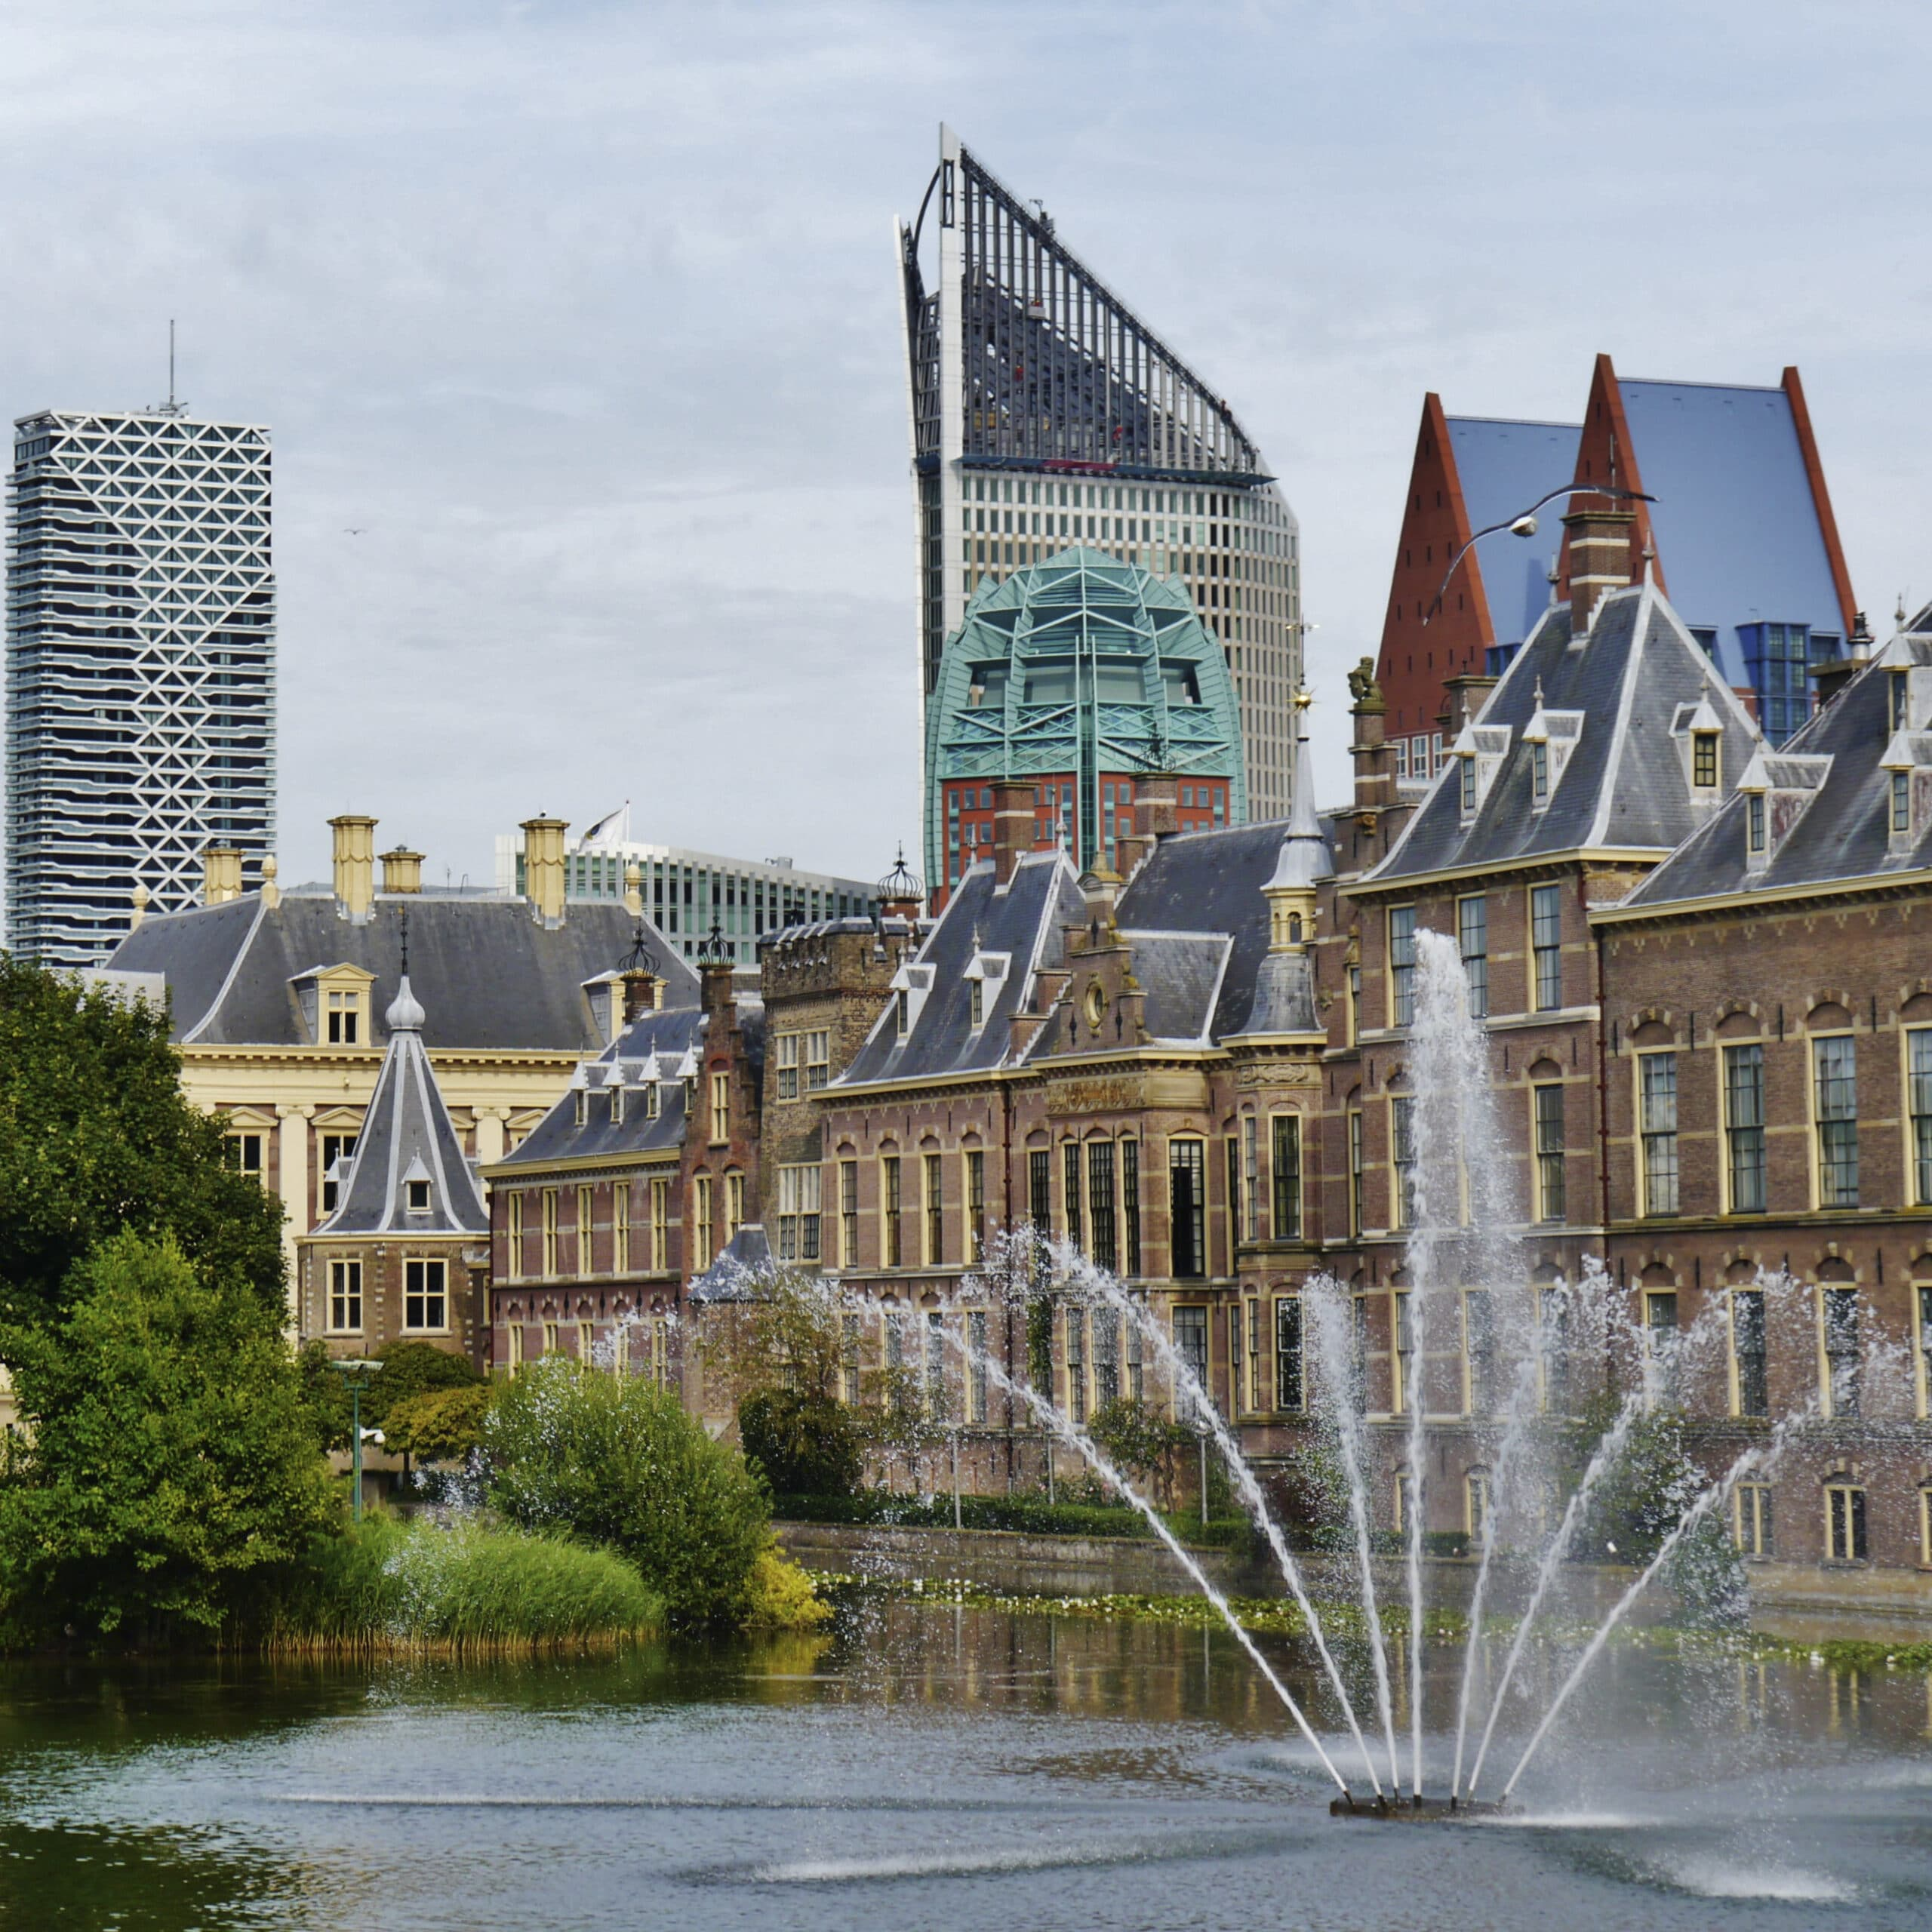 City of the Hague, Netherlands